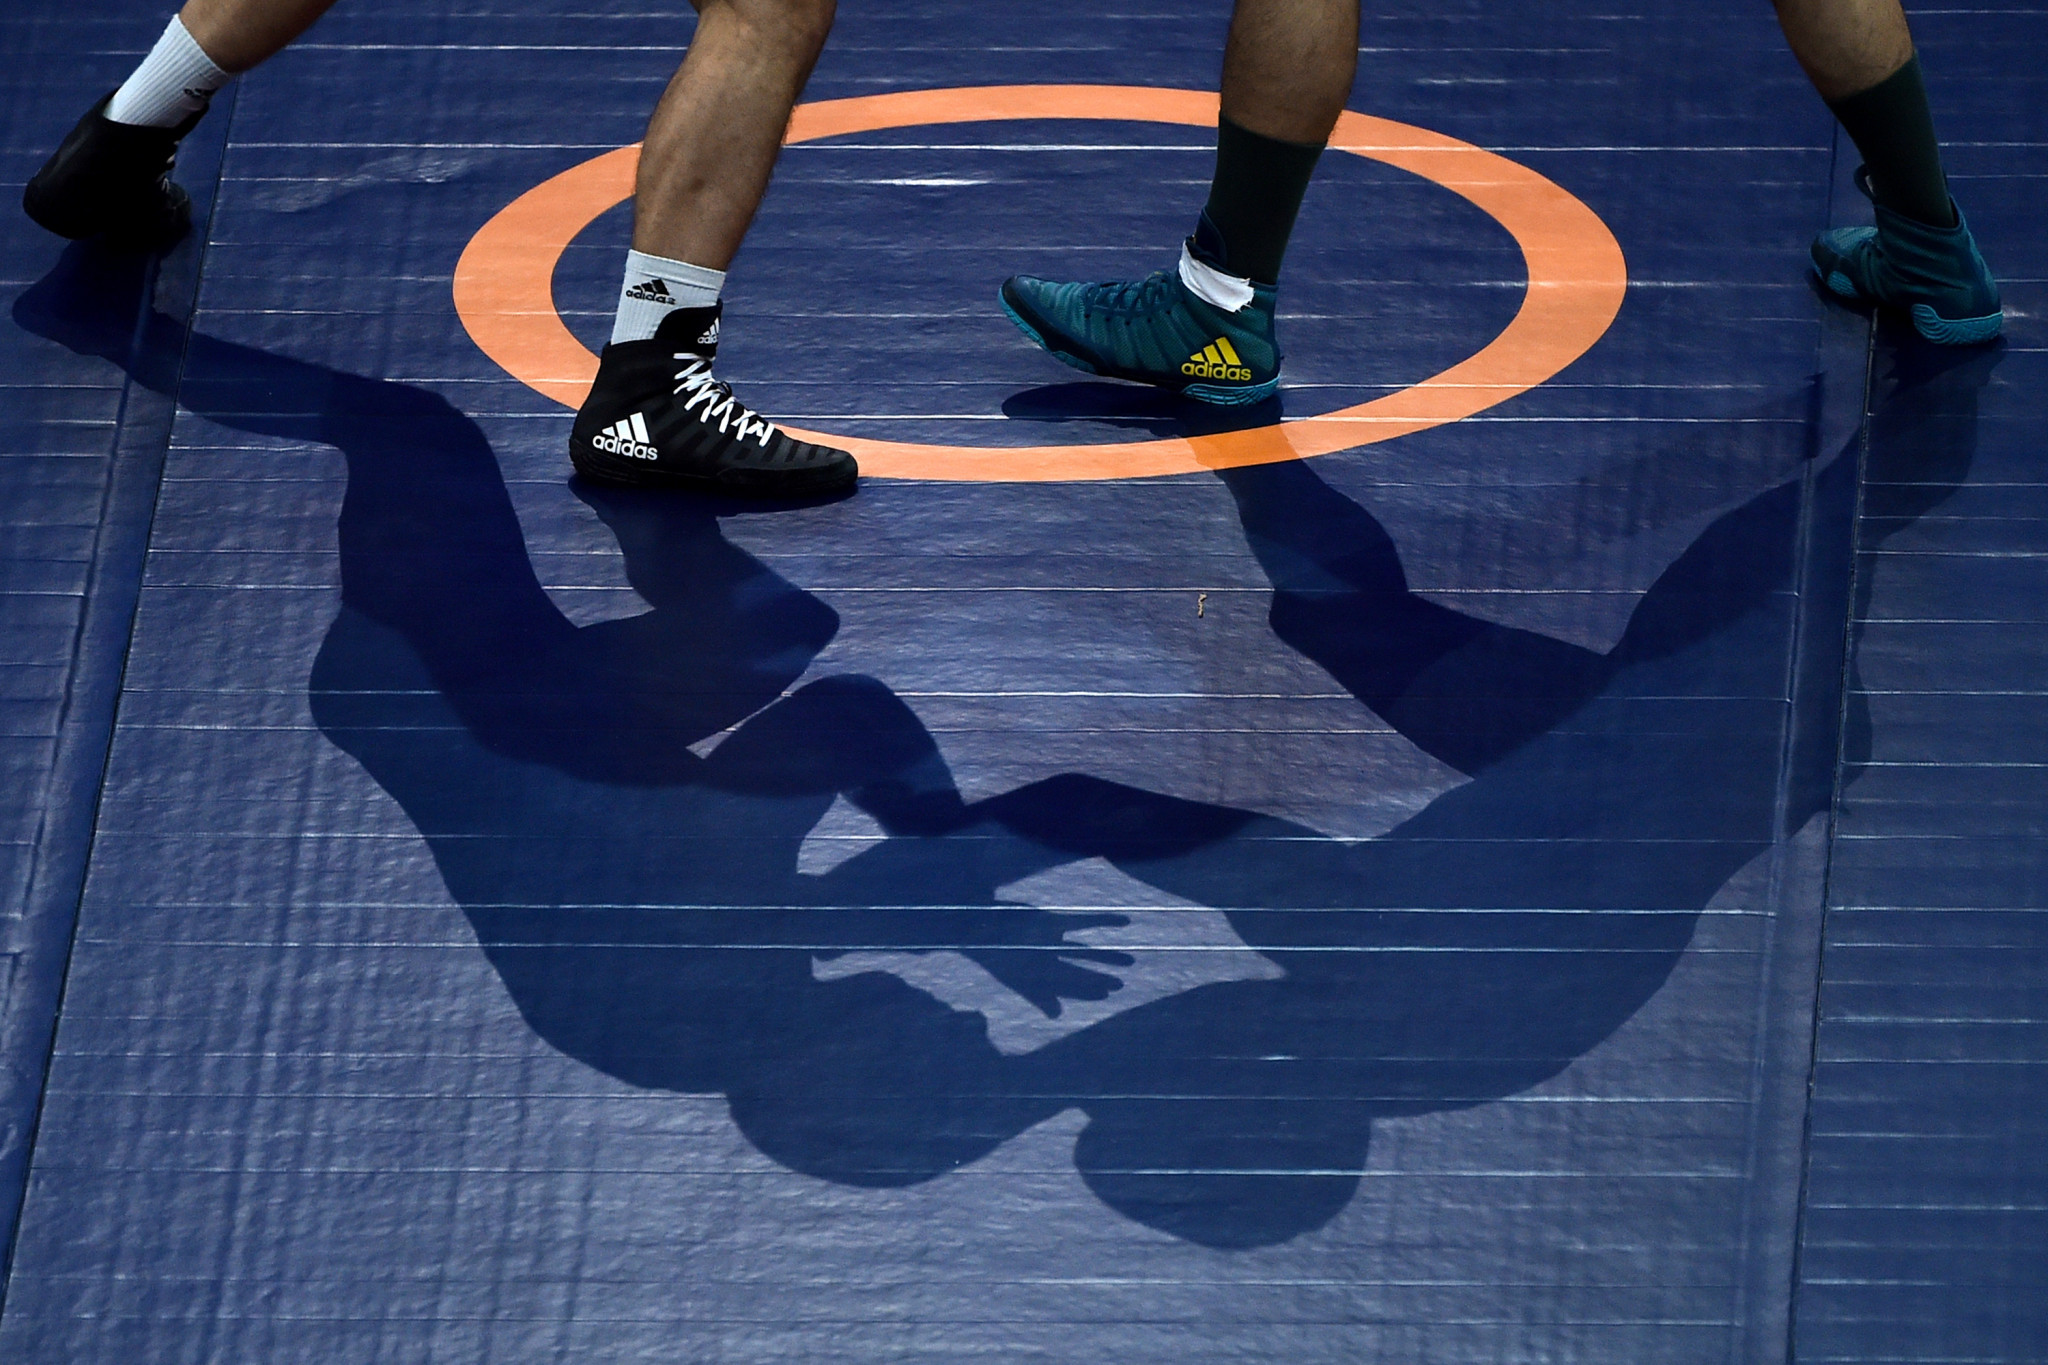 The 2022 World Wrestling Championships have been moved from Russia to Serbia ©Getty Images